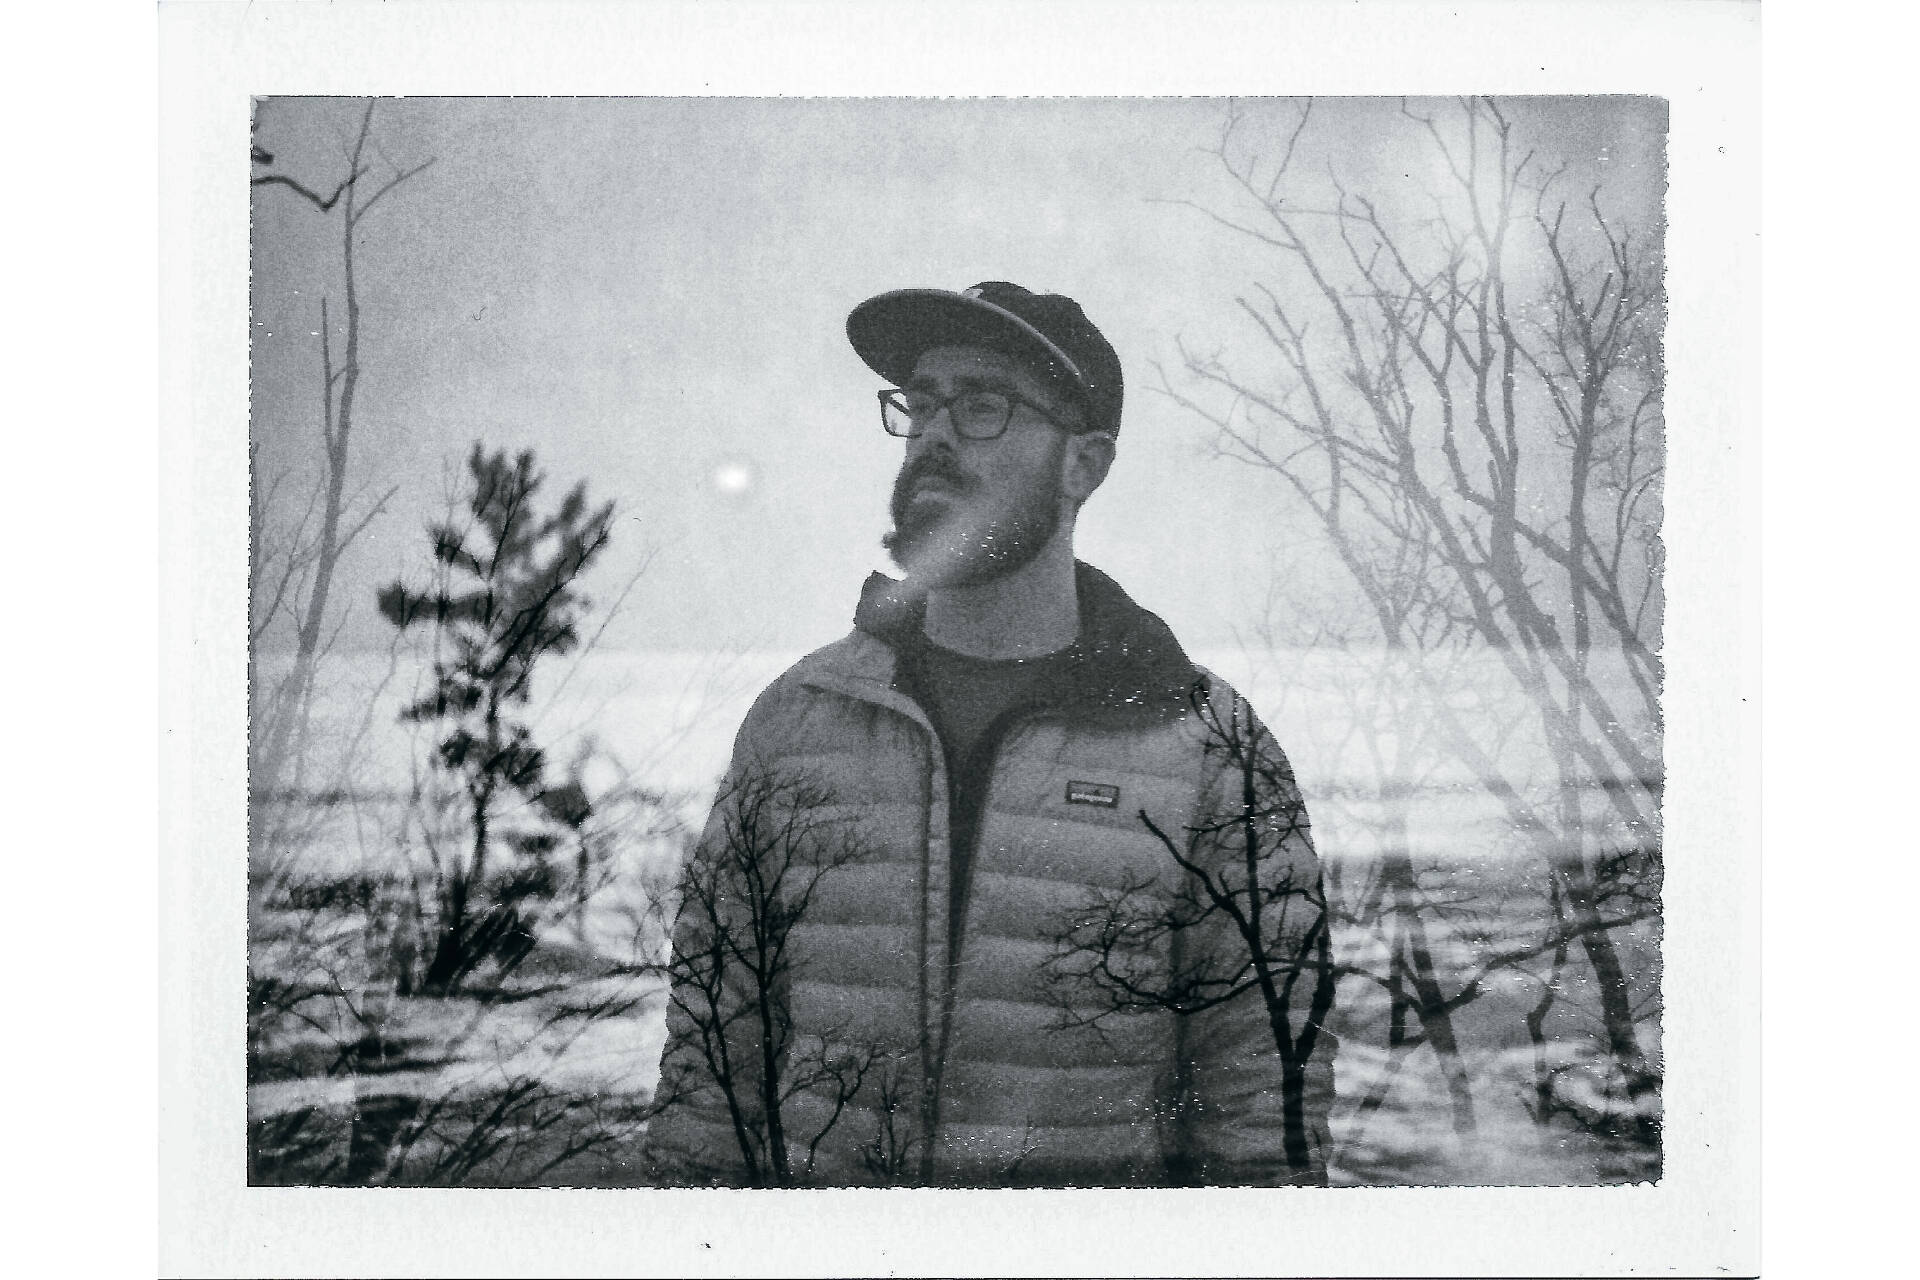 Anthony Barlich double exposure portrait shot on FB-3000b film